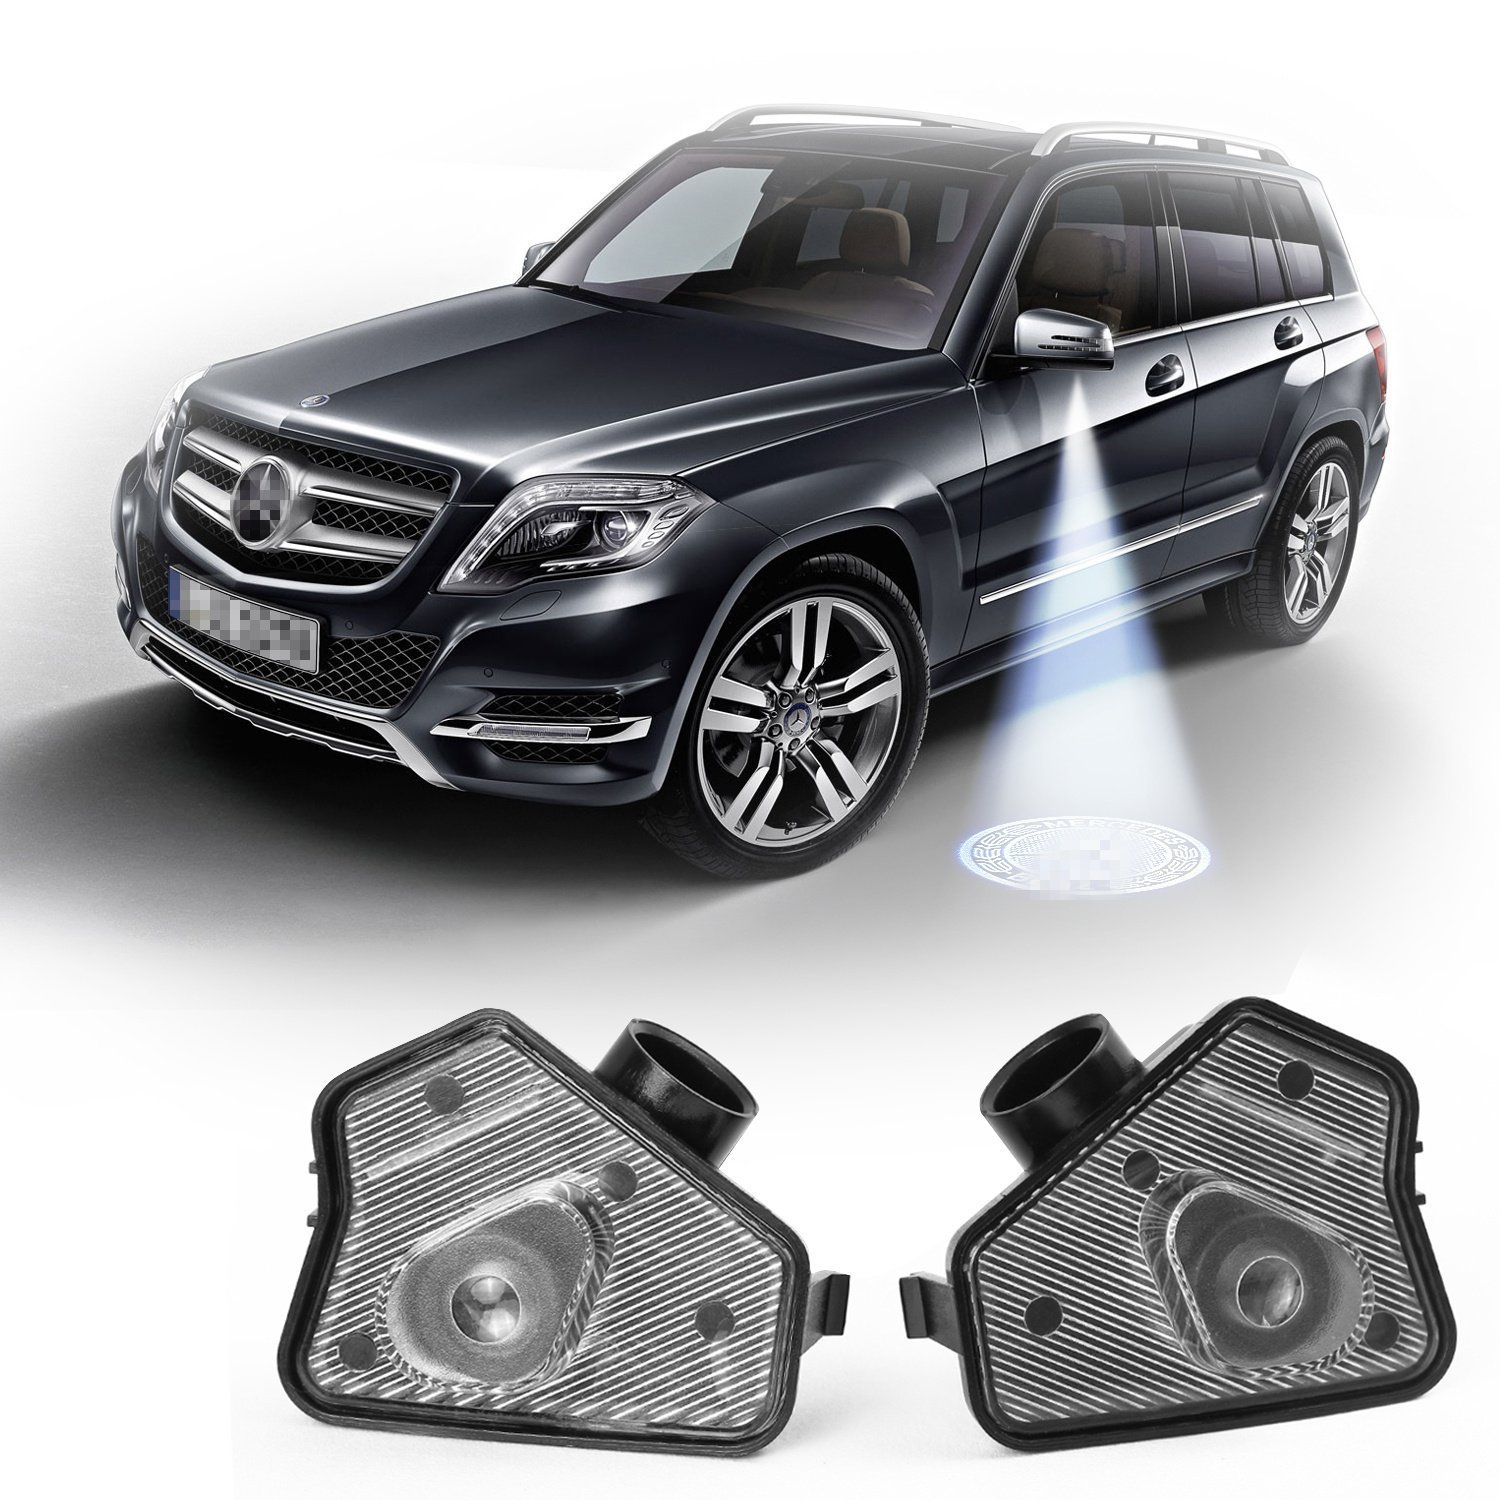 2pcs SenledLED Side Mirror Puddle lamp car logo welcome Projector Ghost Shadow light for BENZ W176 W246 W204 W212 W221 W219 CLA GLK GLA (Mirror lights with logos For Benz) M2